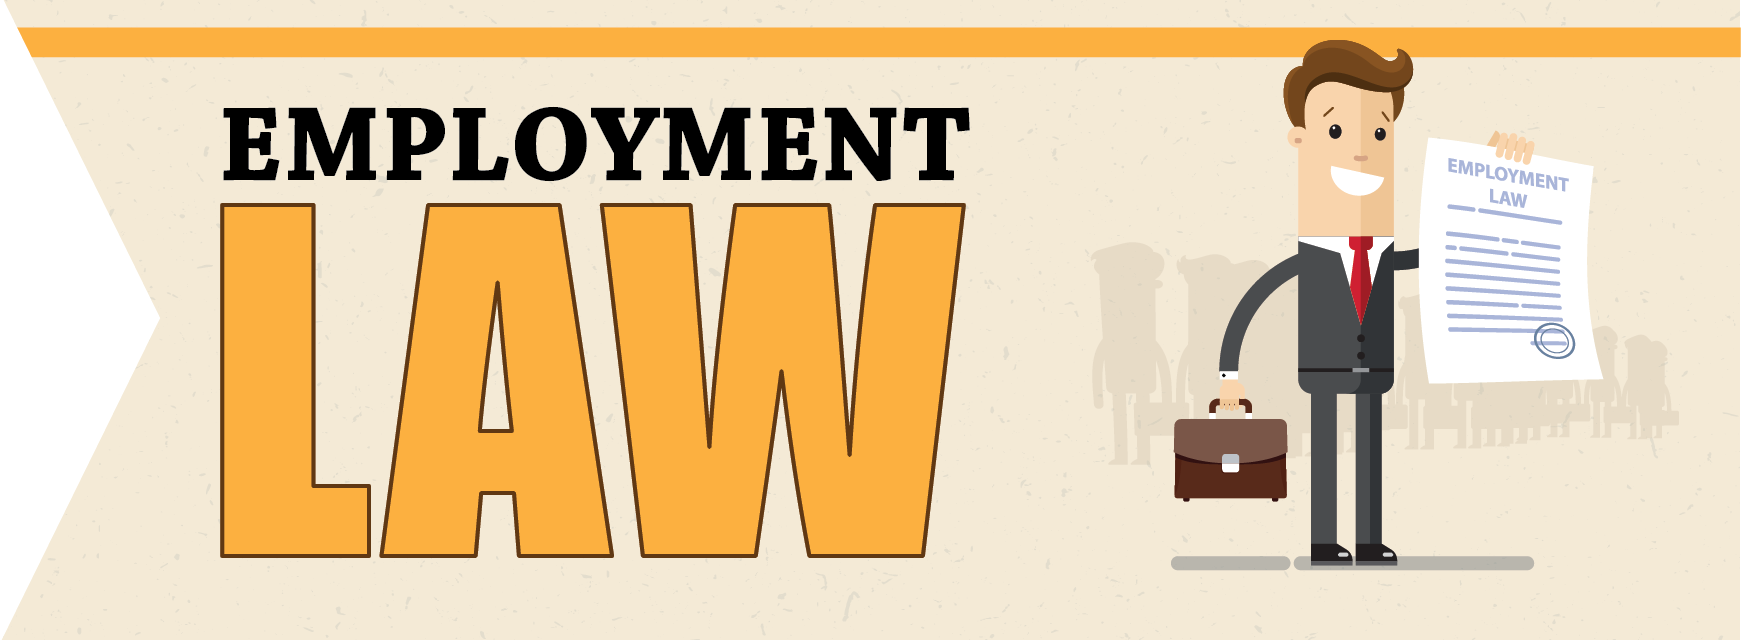 employment-law@2x.png